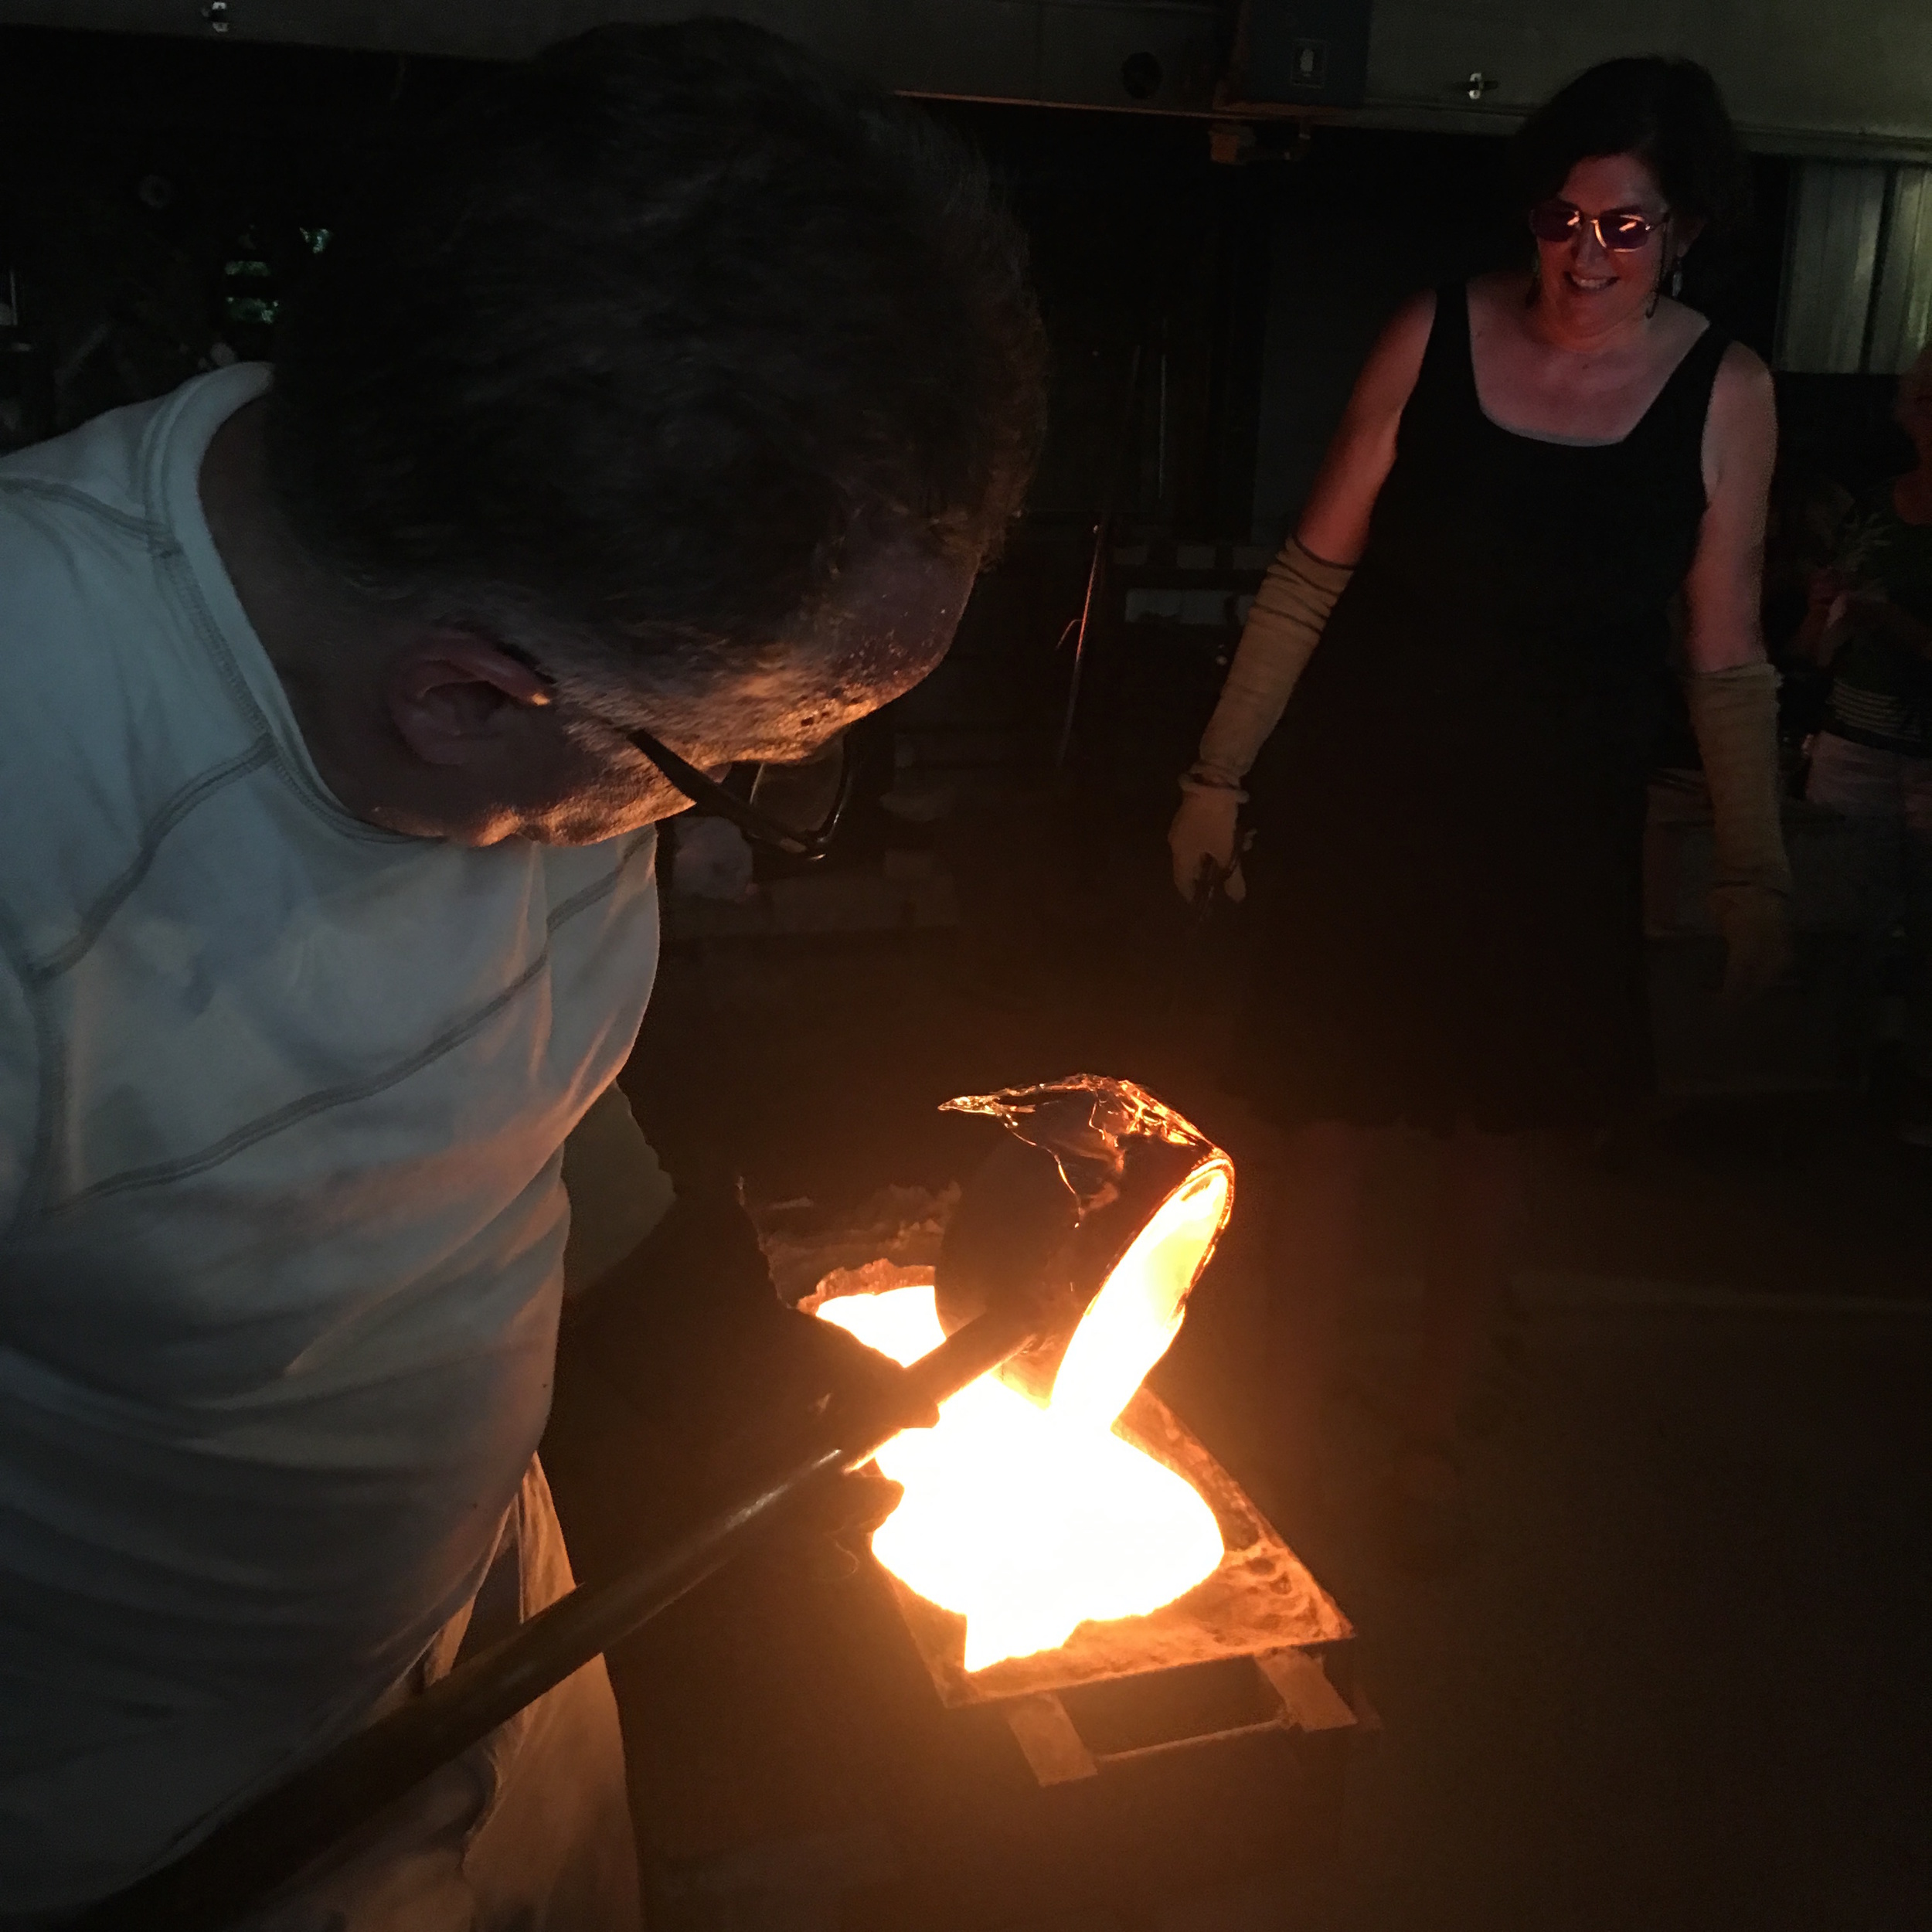 Jeremy pouring molten glass into the dragon mold. Photo by Suzanne Rose